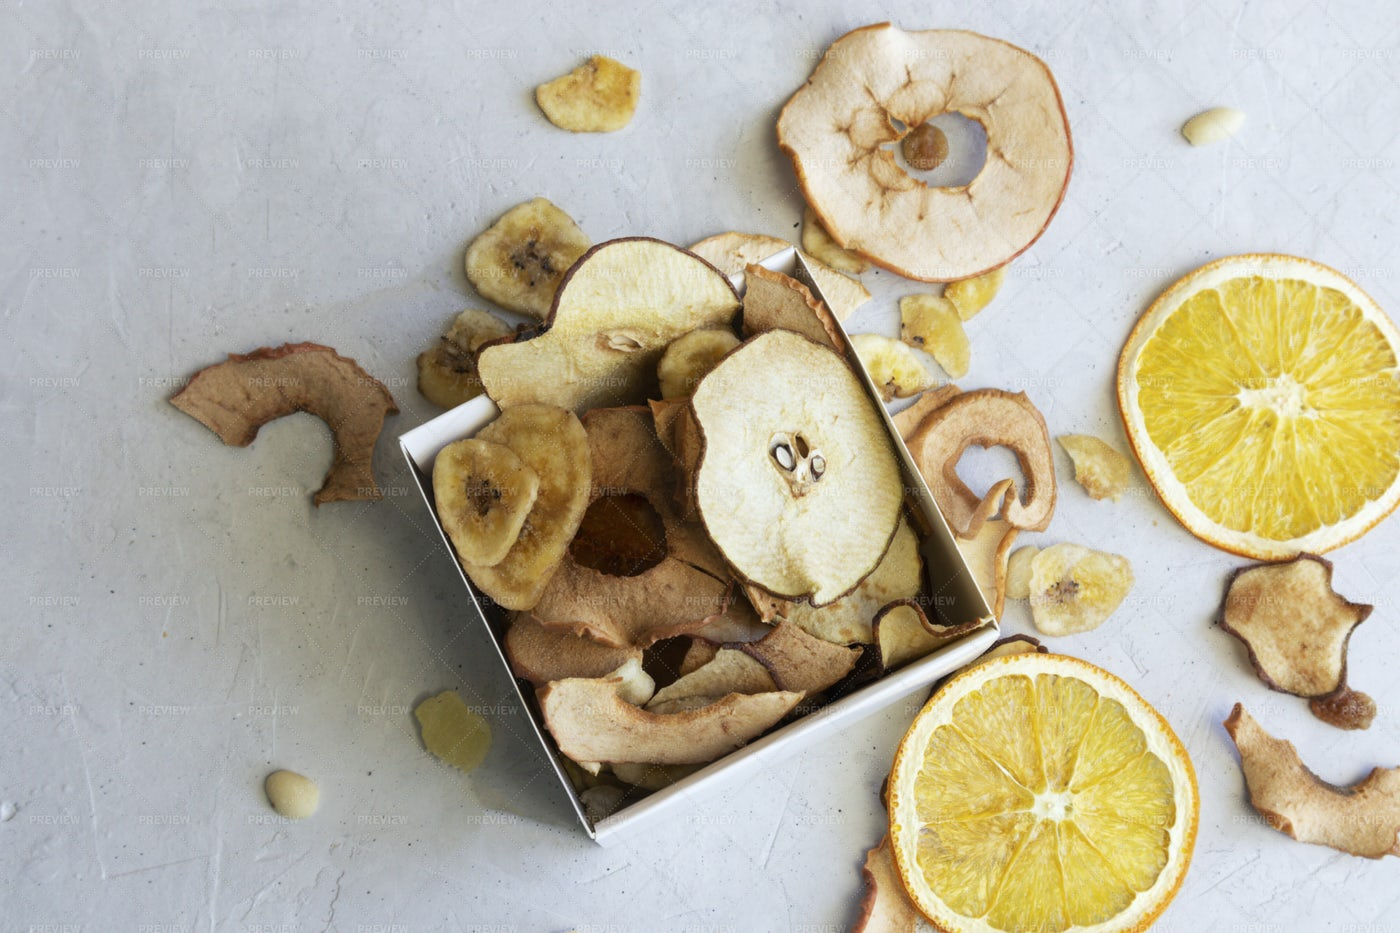 Box With Dried Fruit: Stock Photos